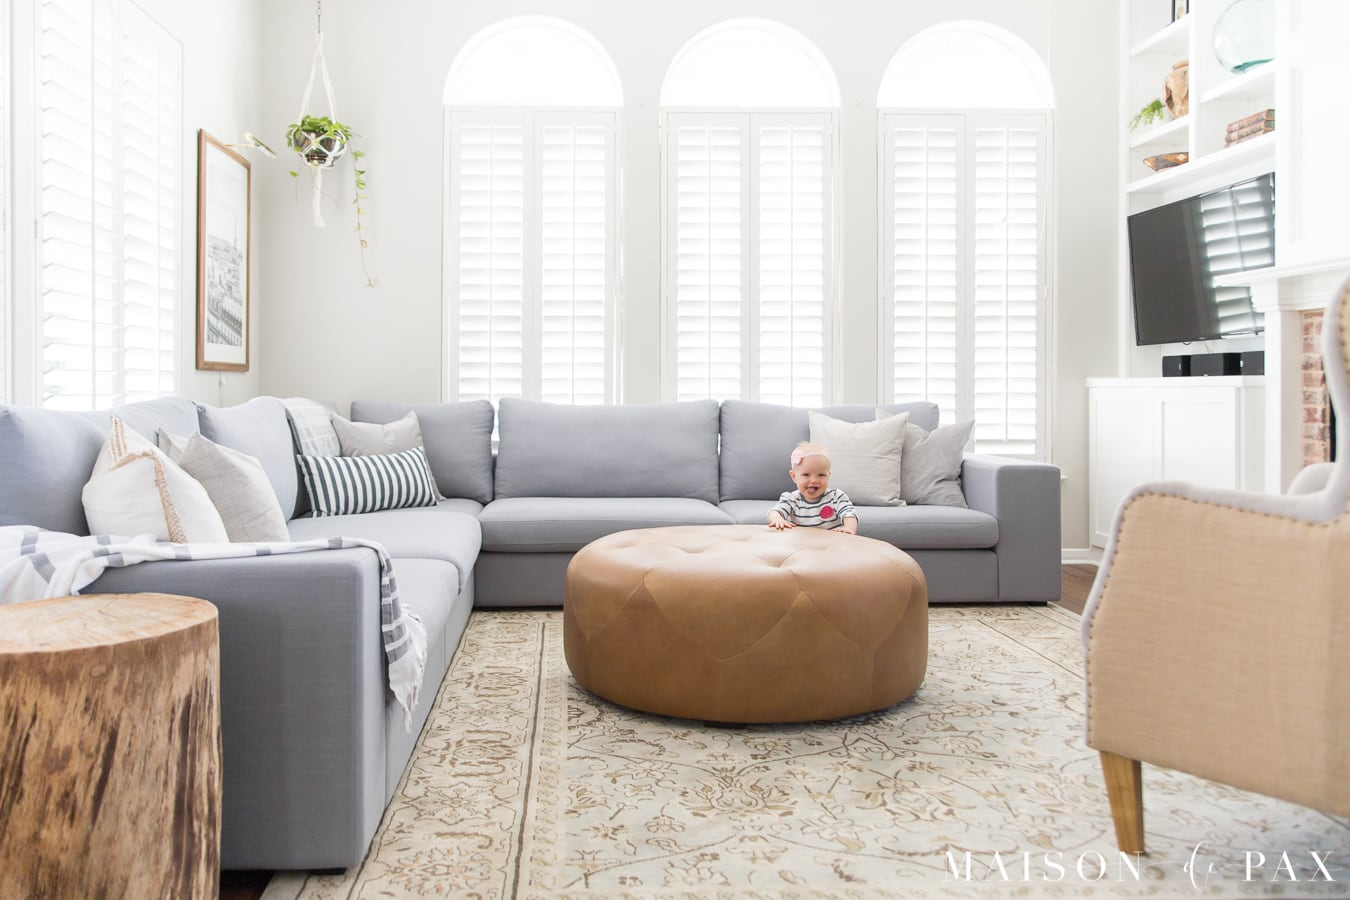 gray couch living room decor amazon furniture designing a small with large sectional maison de pax bright design